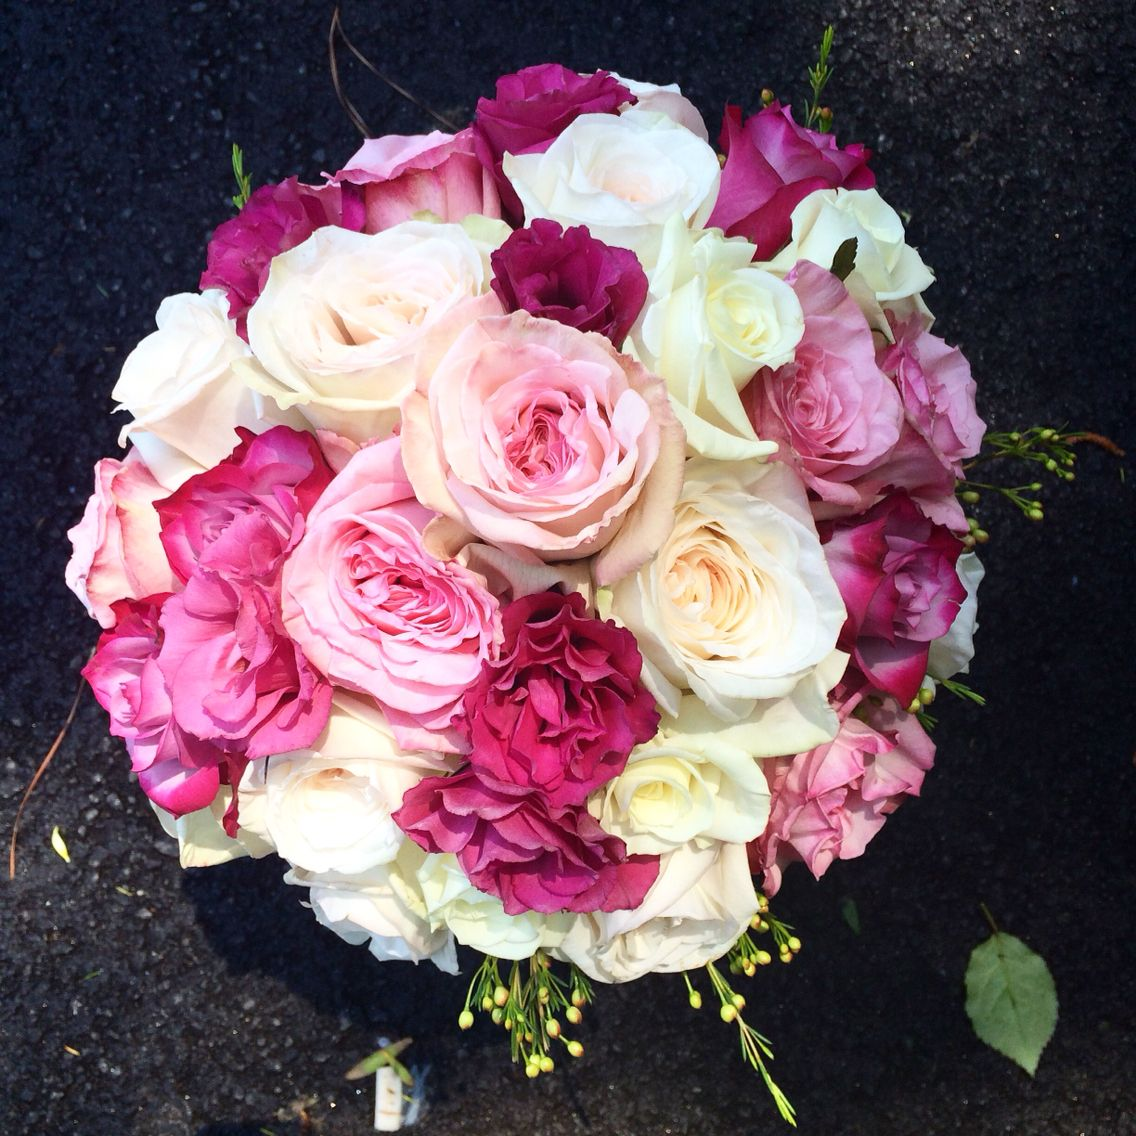 Gardenroses Bouquet In Shades Of Pink With Lisianthus Holland Daze